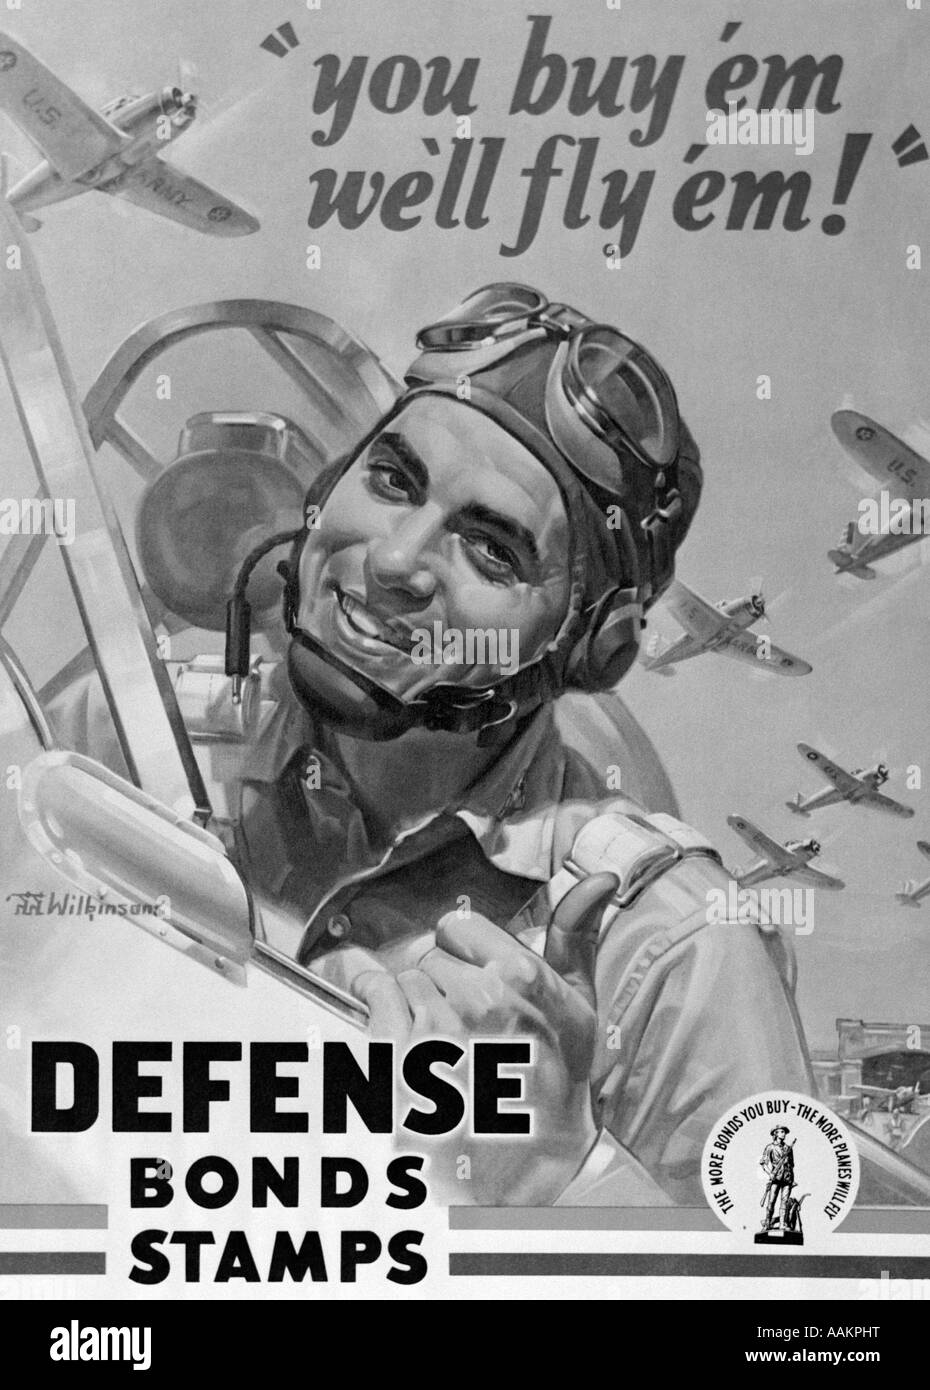 1940s DEFENSE BOND & STAMP POSTER FROM WORLD WAR TWO WITH FIGHTER PILOT SAYING YOU BUY EM WE FLY EM - Stock Image